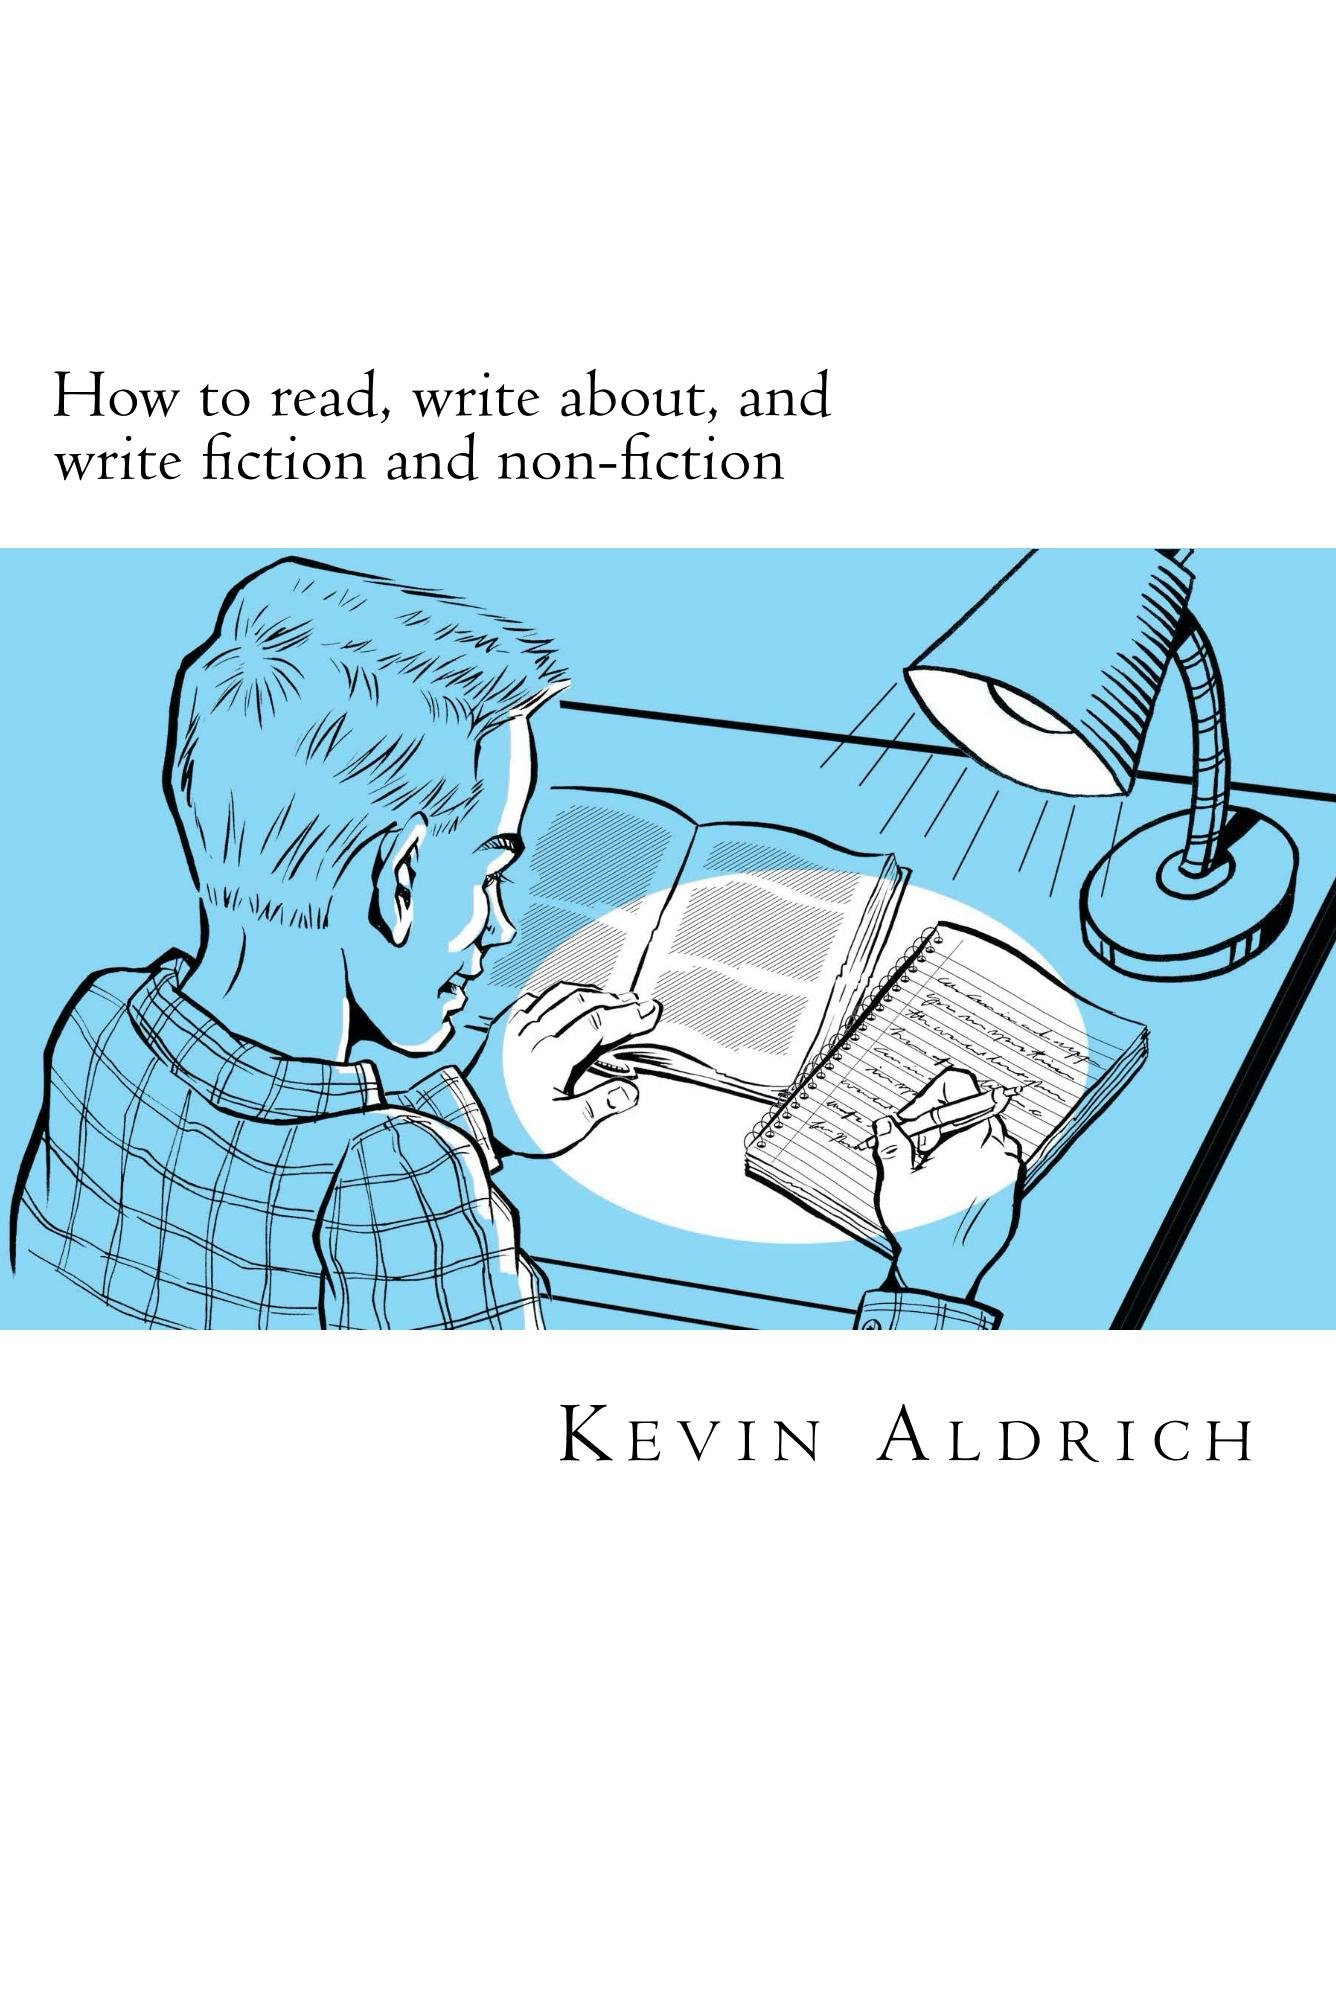 How to Read, Write about, and Write Fiction and Non-Fiction